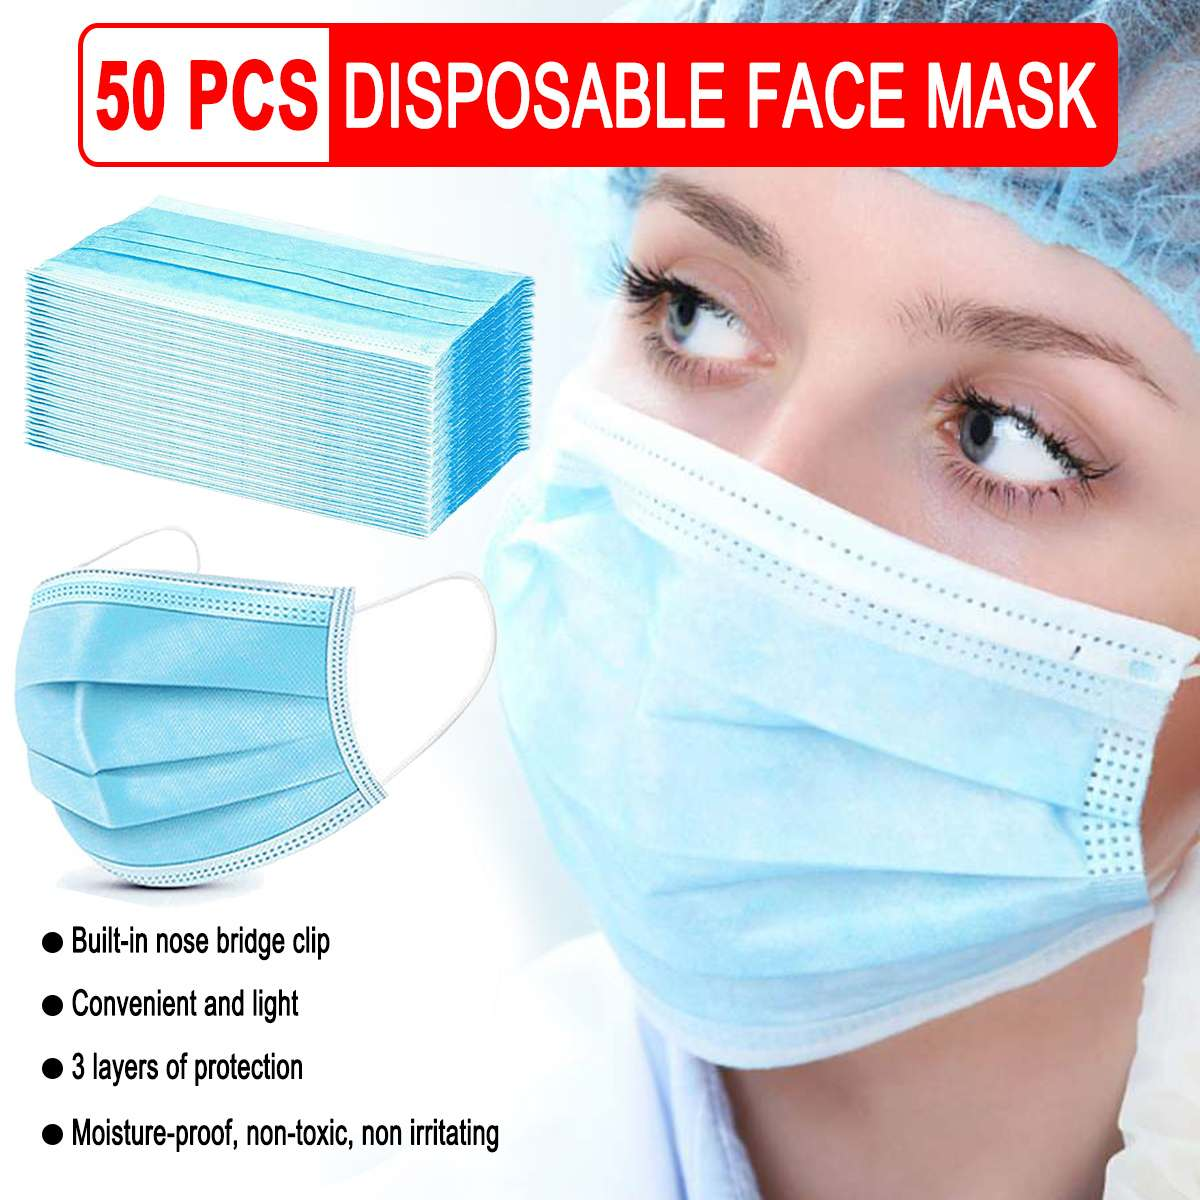 50Pcs K94/N95/N90 9334 FFP3 Gas Mask Anti-PM2.5 Filter Oily Non-oily Particulates Safety Respirator Protective Mask Haze Weather